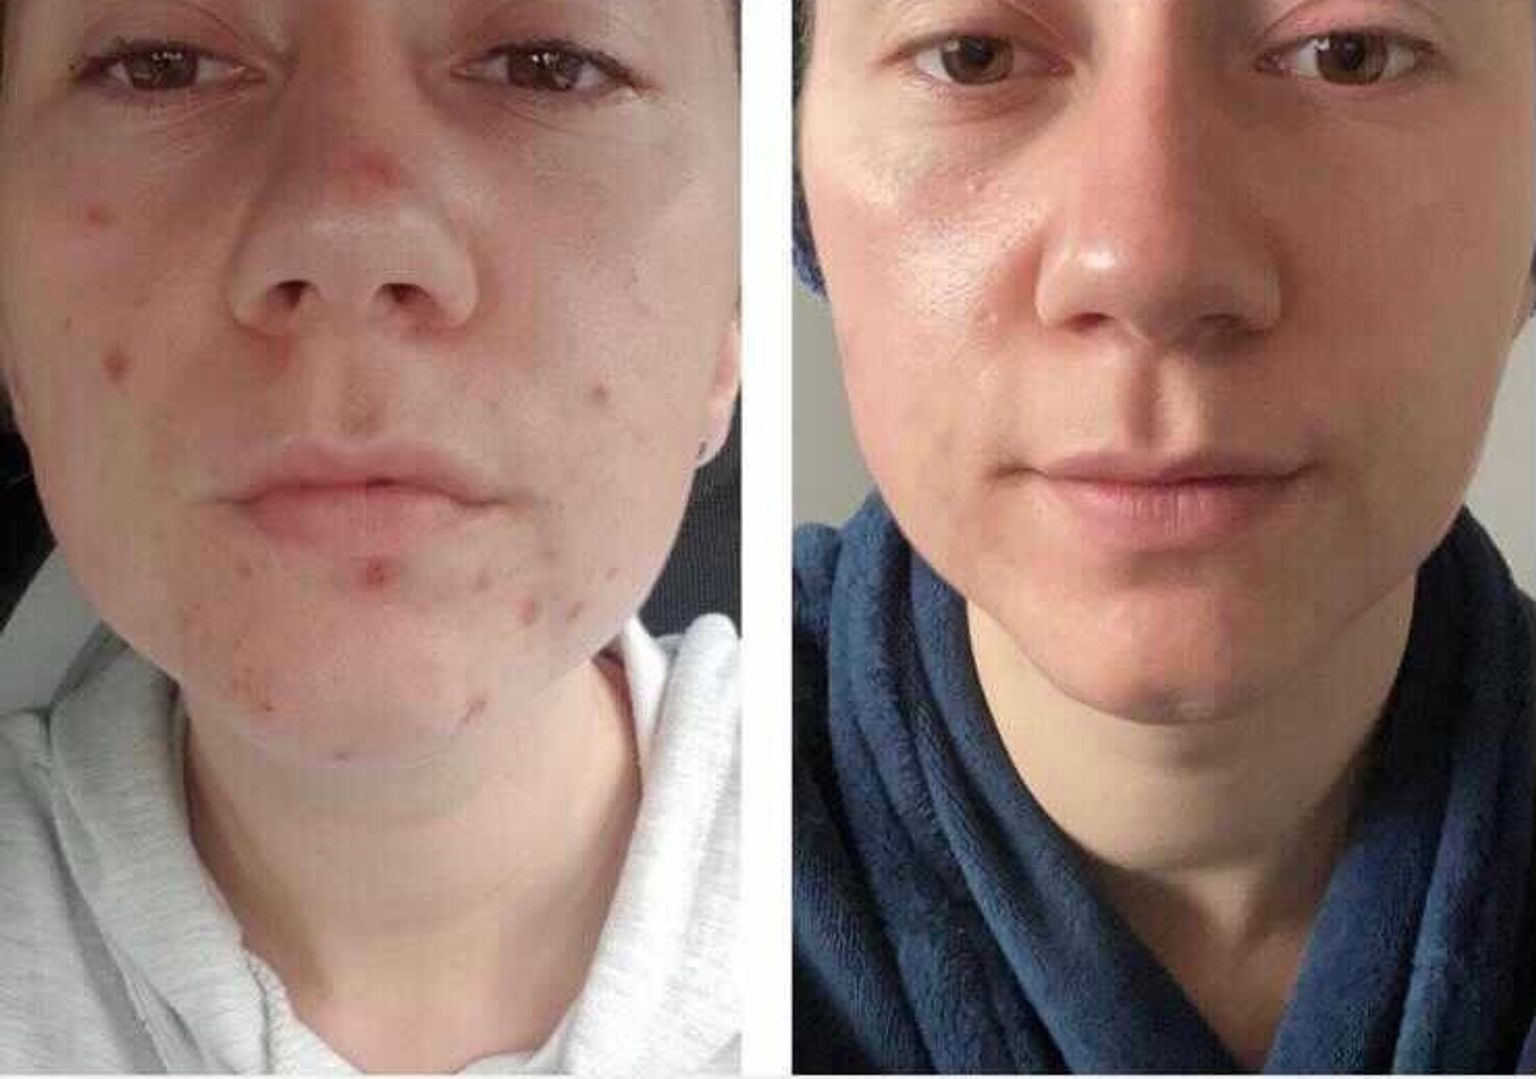 Chelsea's chemical peel before and after images